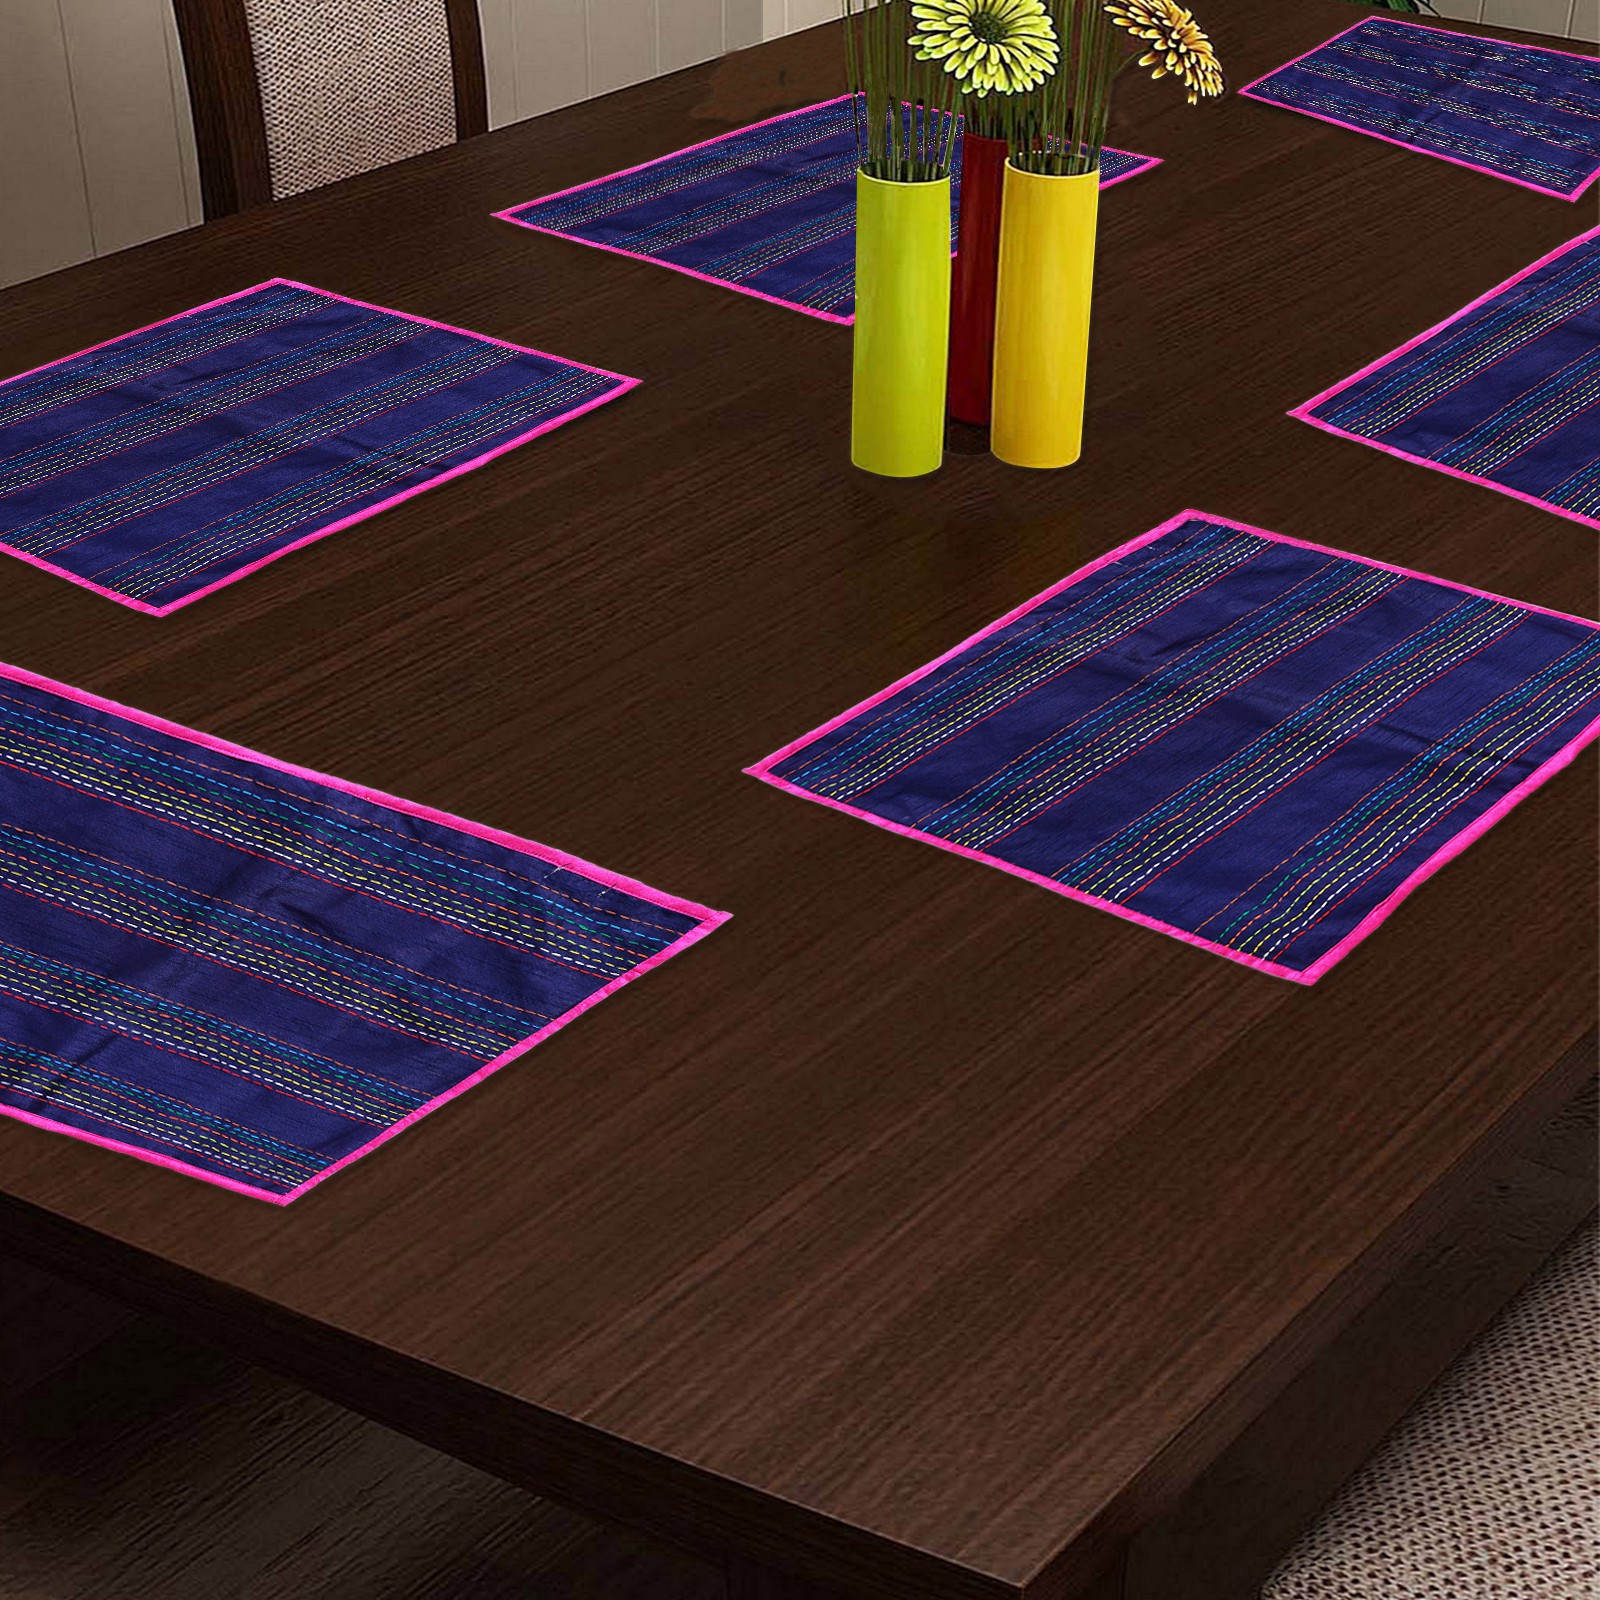 kantha-work-pack-of-6-table-placemats